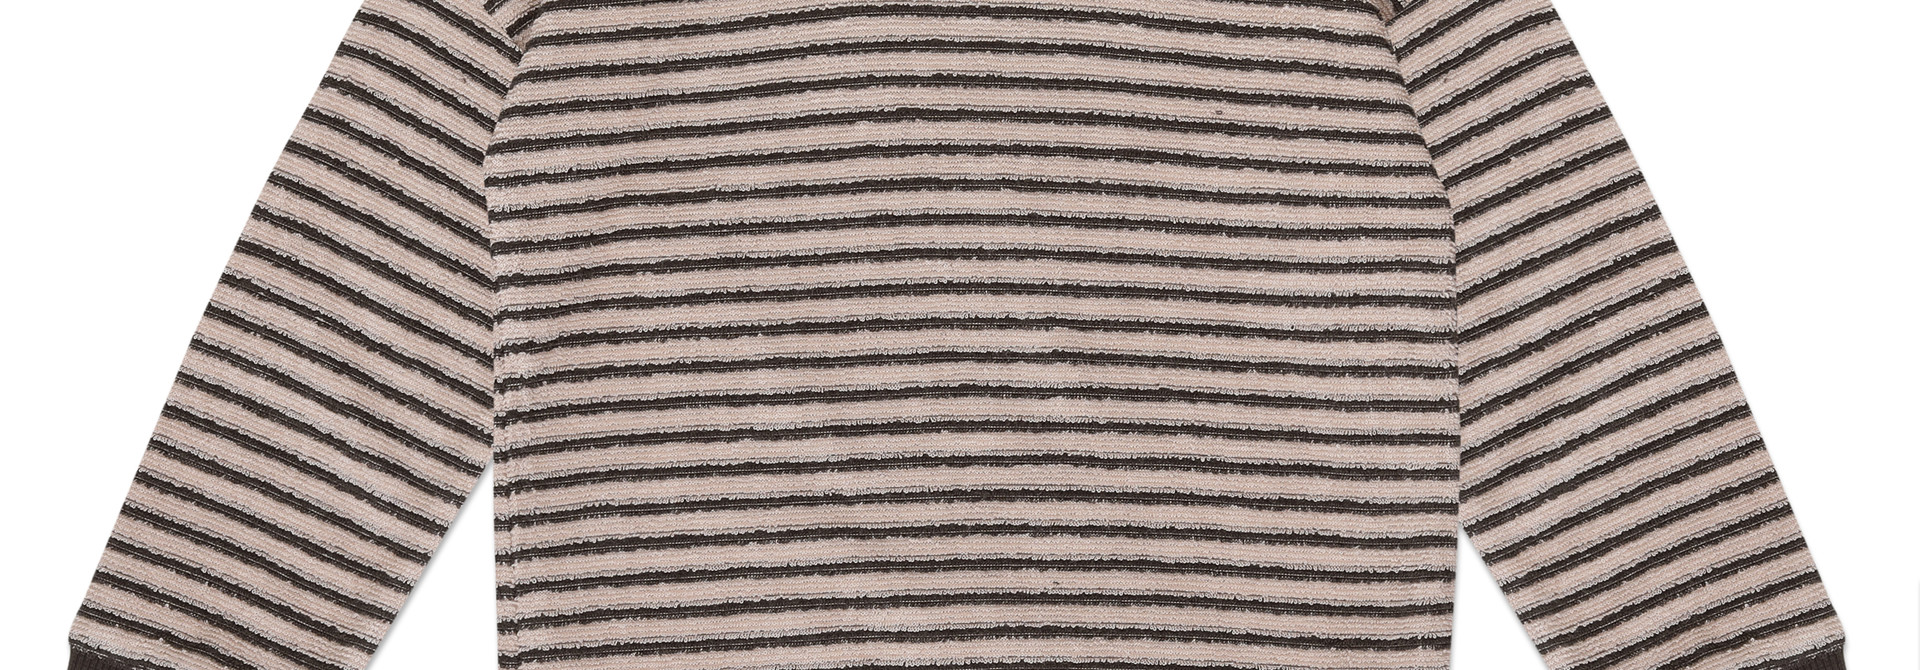 Baby sweater loopy stripes - Graphite